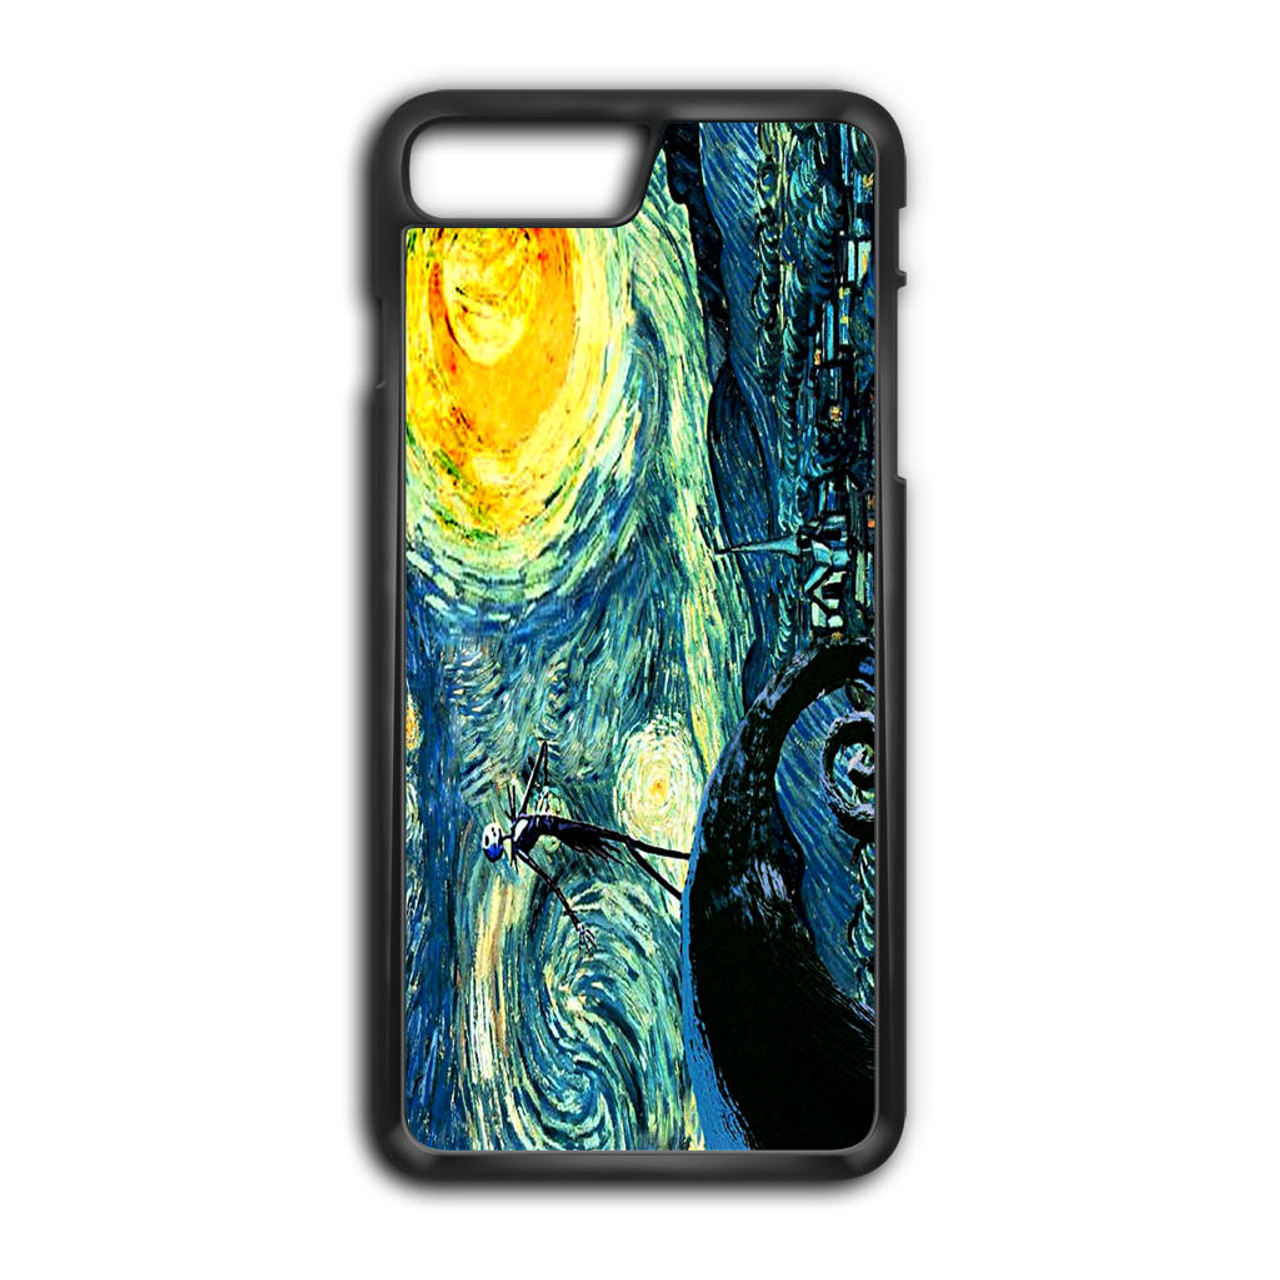 iphone 7 case nightmare before christmas